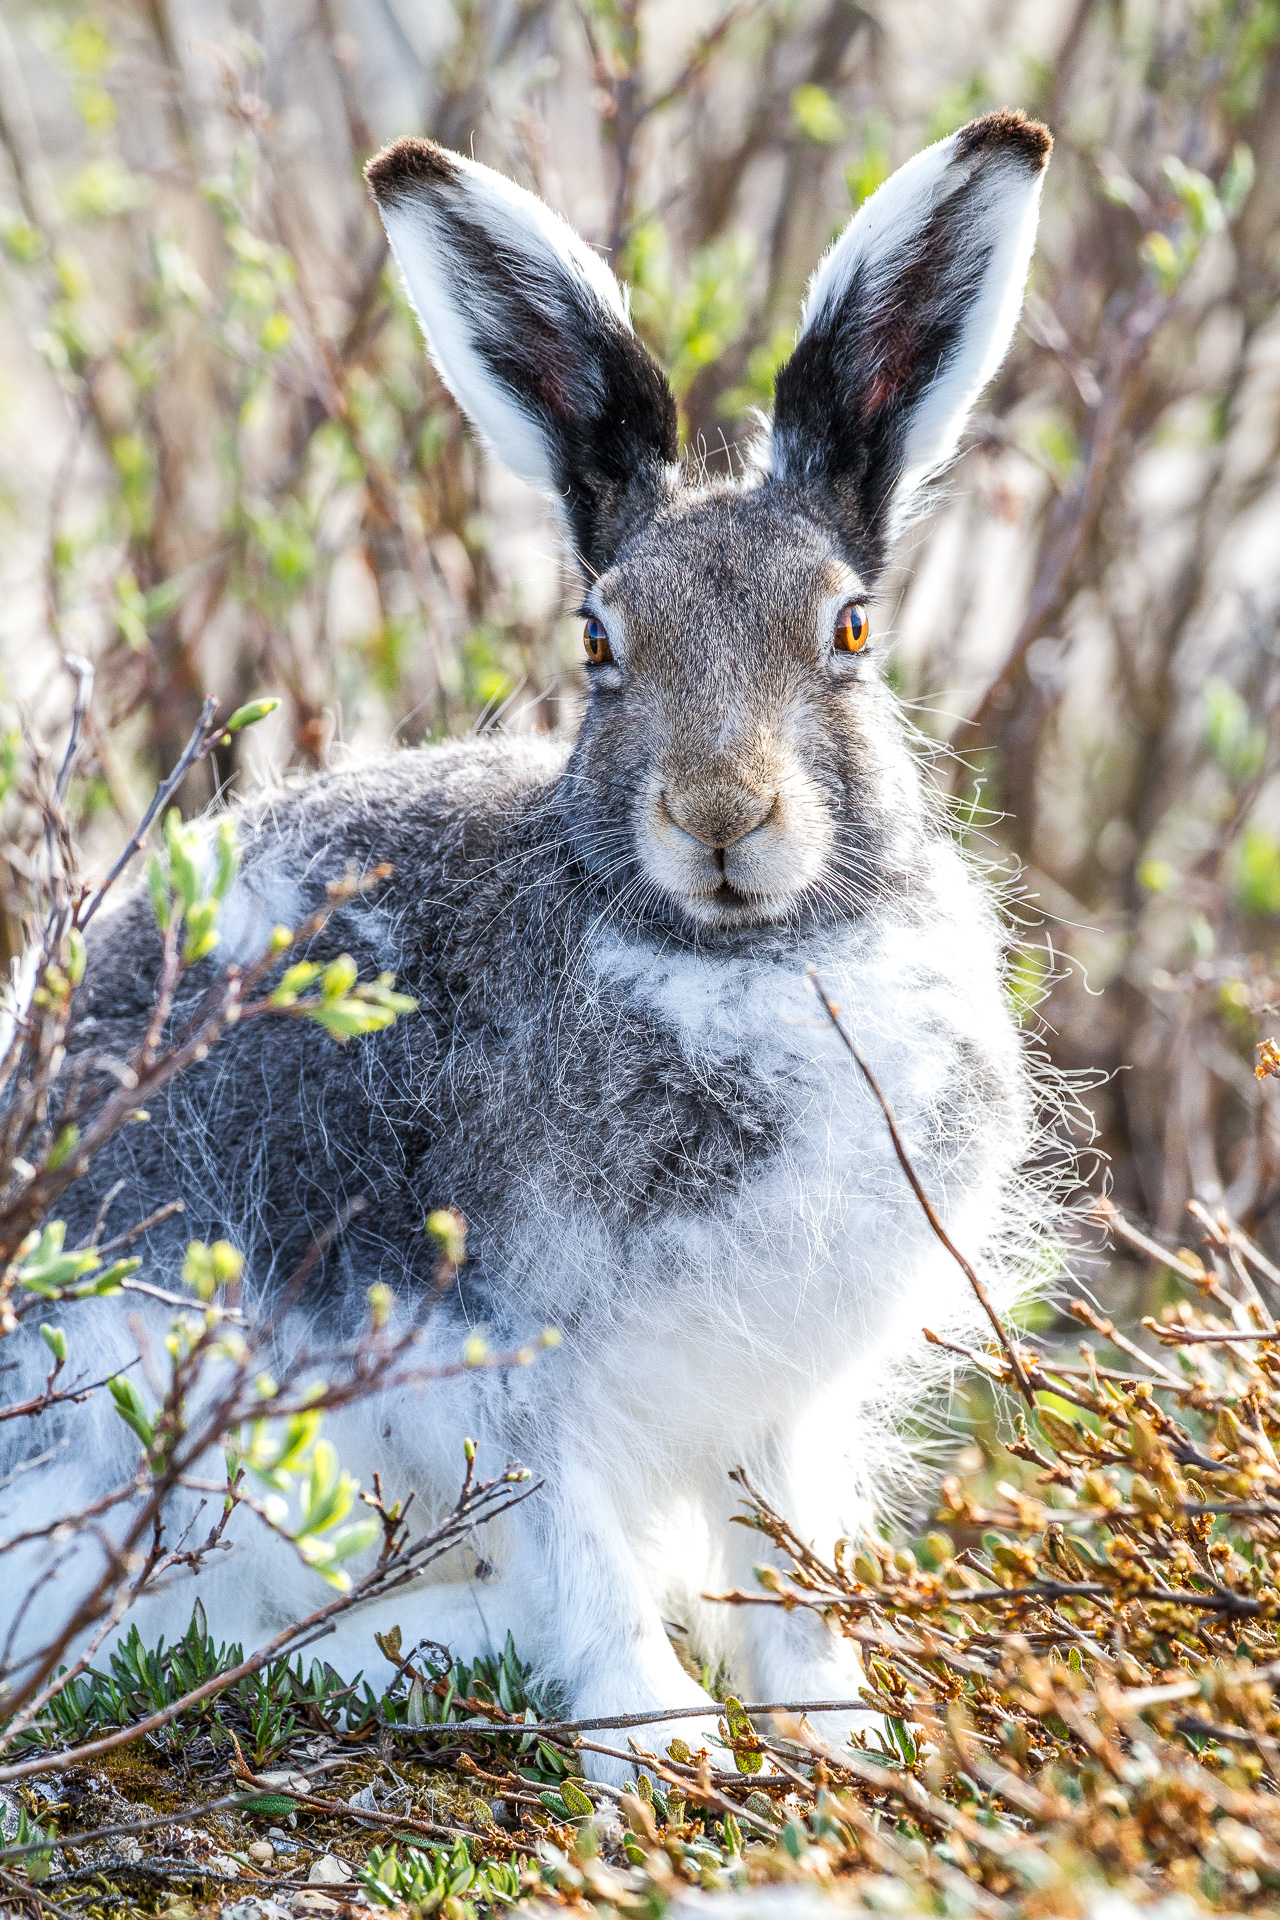 Arctic Hare molting Lepus arcticus Churchill Northern Studies Center Churchill Manitoba Canada-10